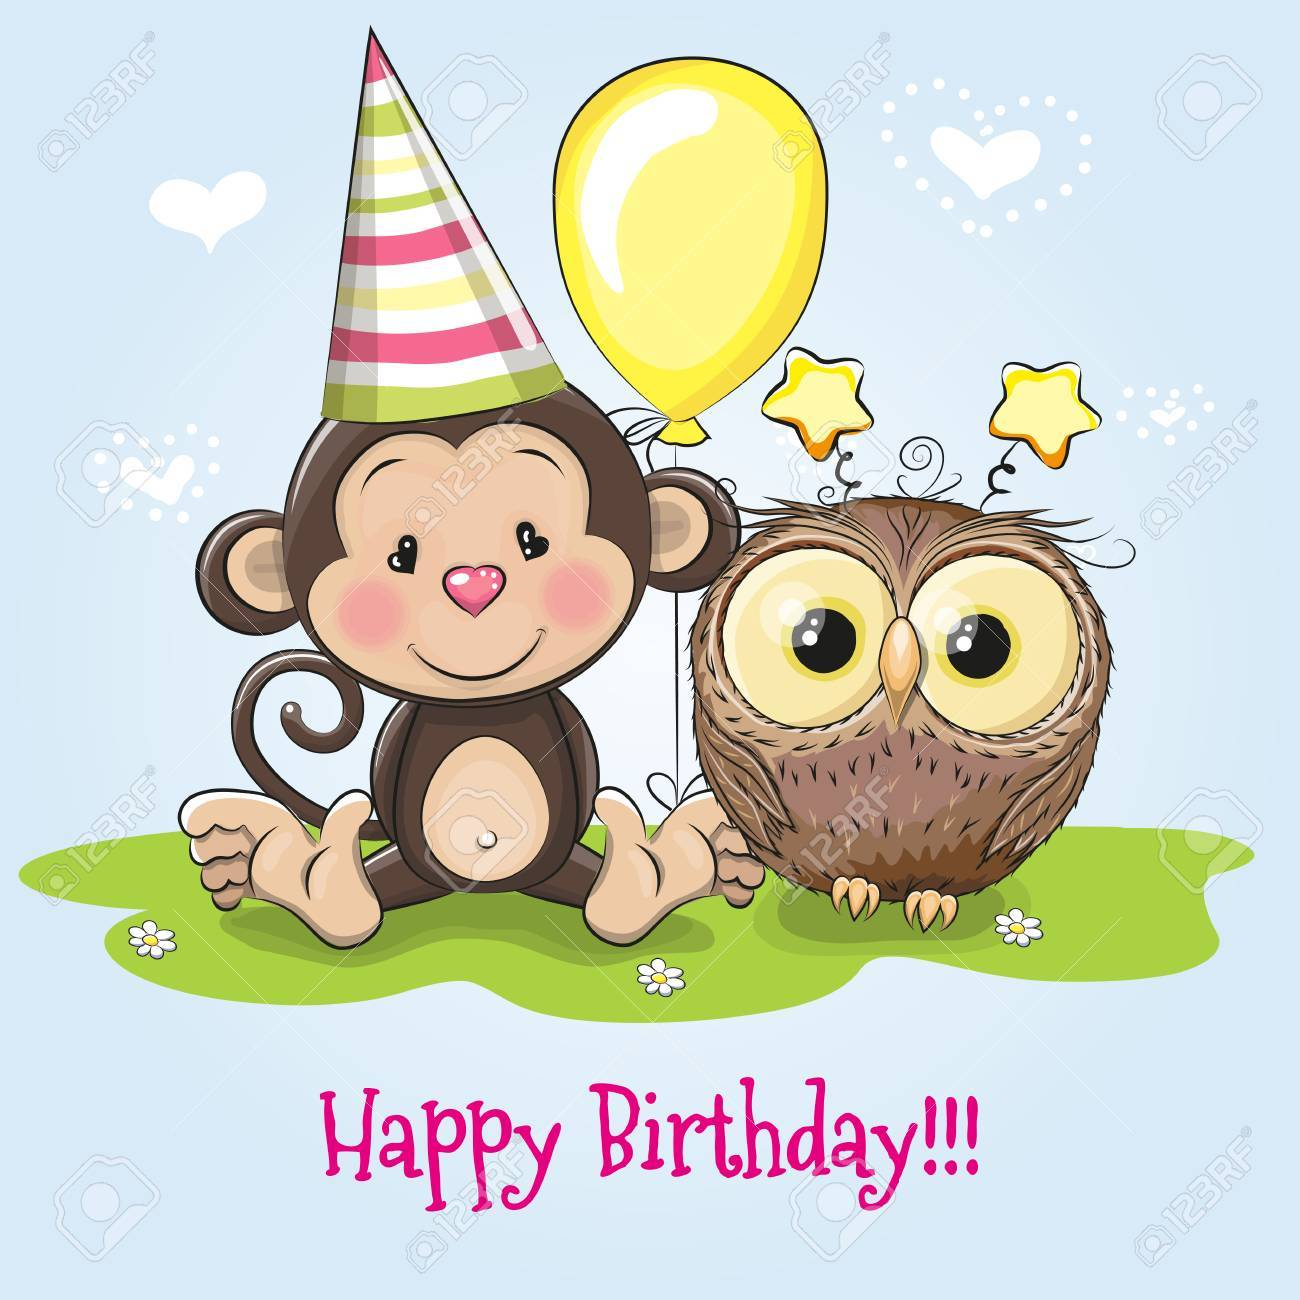 Greeting Birthday Card With Monkey And Owl Stock Vector